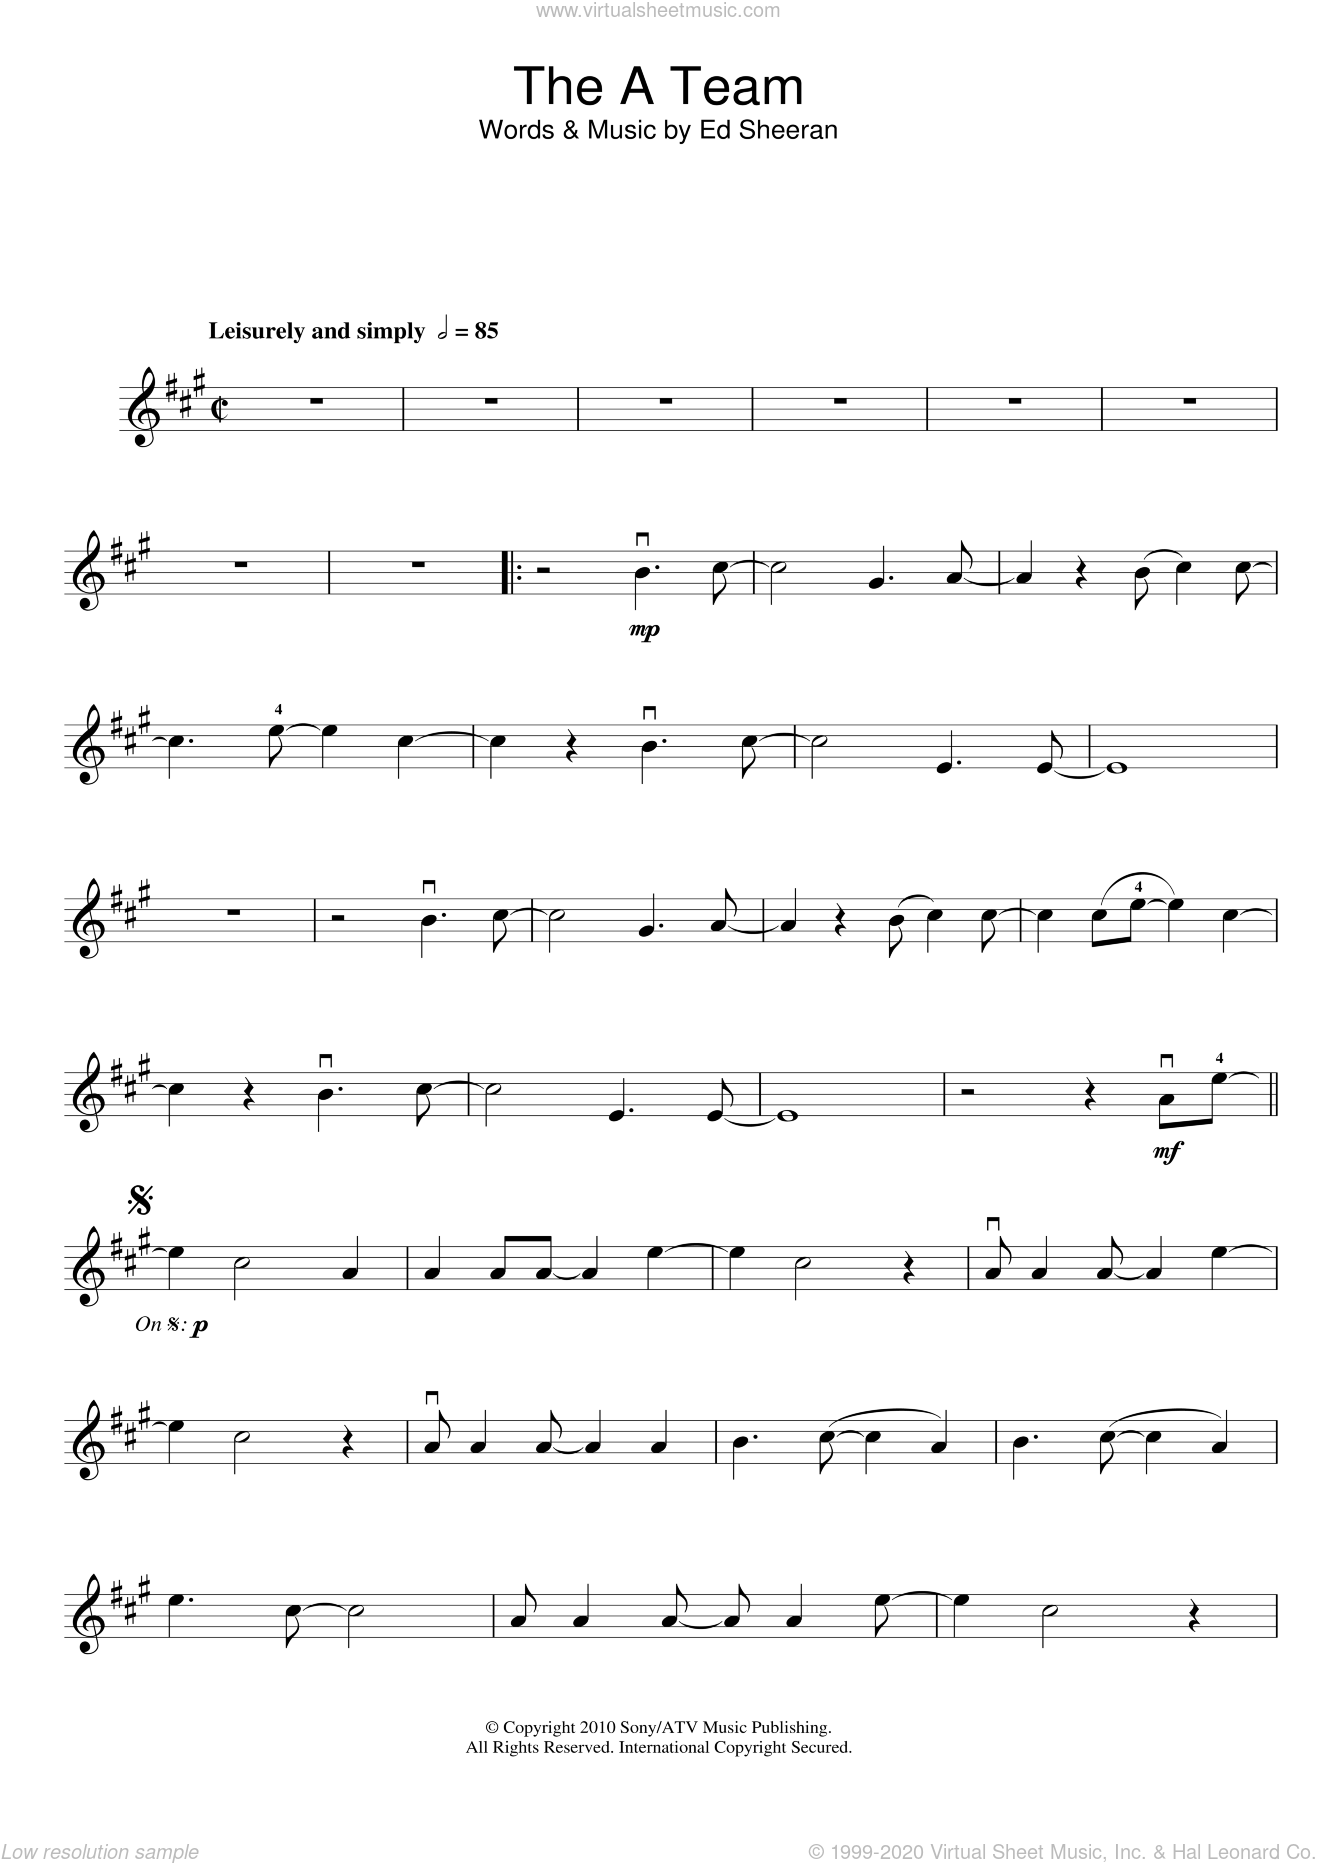 The A Team sheet music for violin solo by Ed Sheeran, intermediate skill level